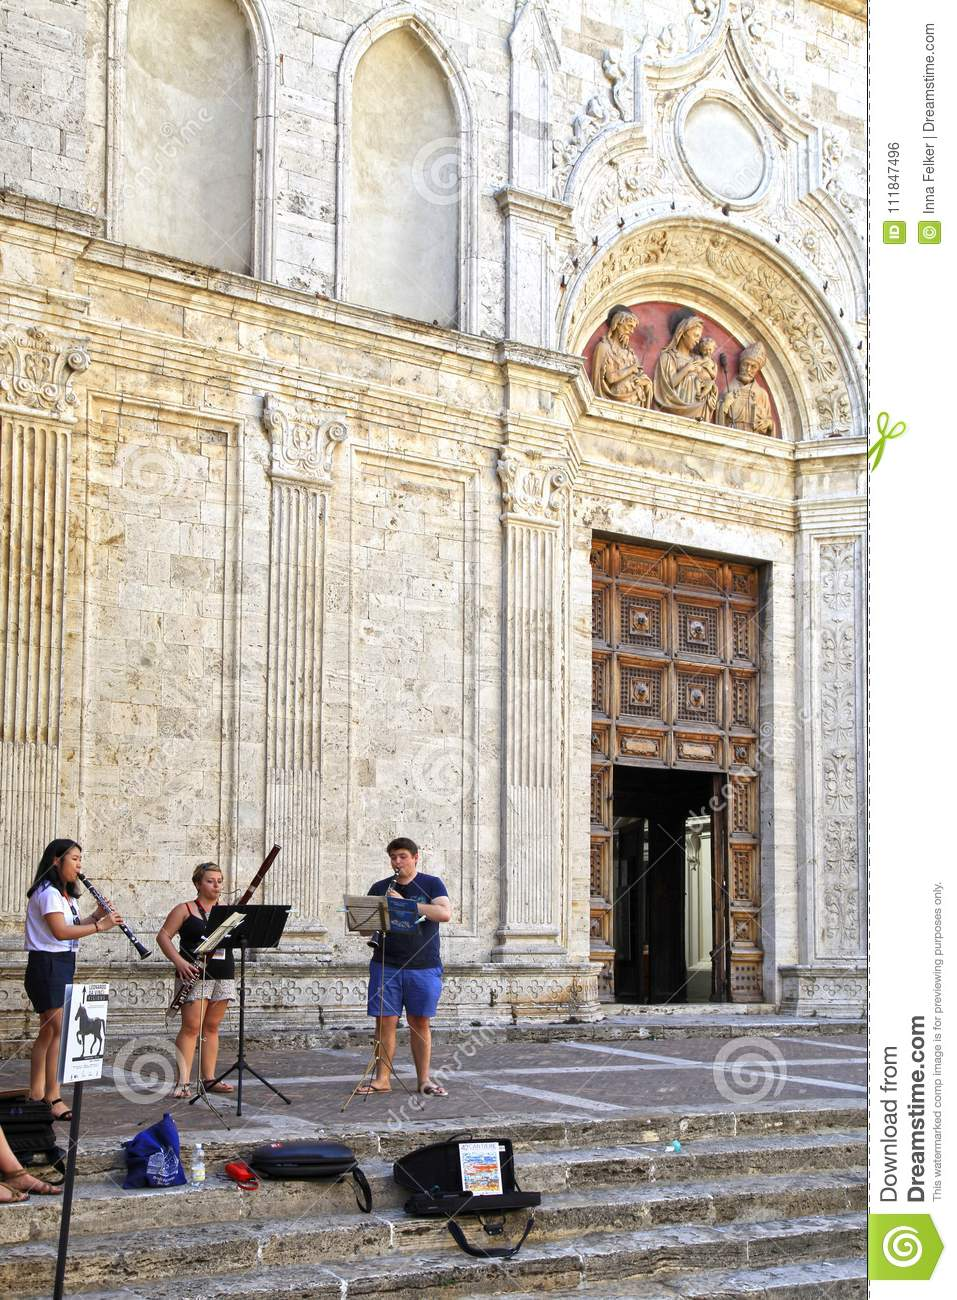 Street musicians on steps of Cathedral in tuscan town Montepulciano, Tuscany, Italy